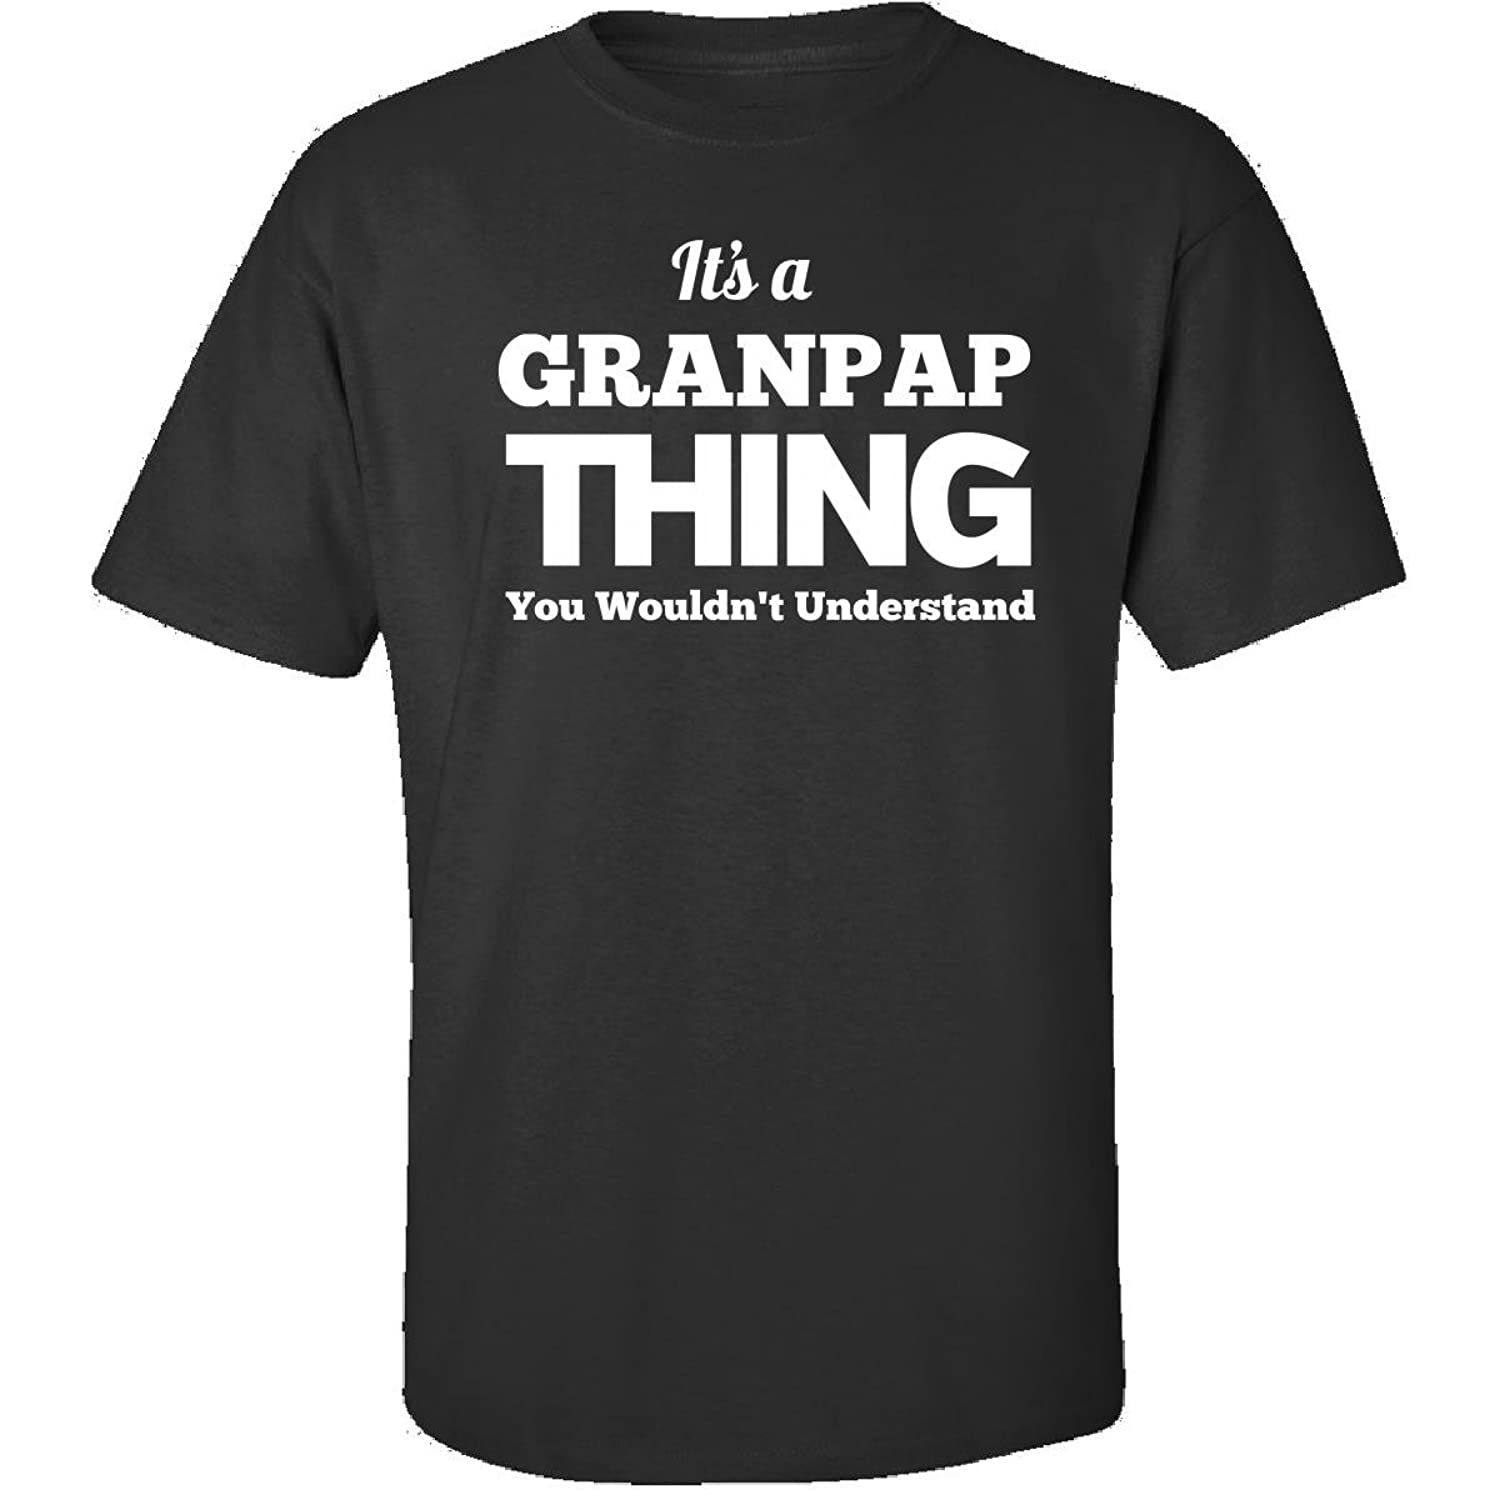 Its A Granpap Thing You Wouldnt Understand - Adult Shirt